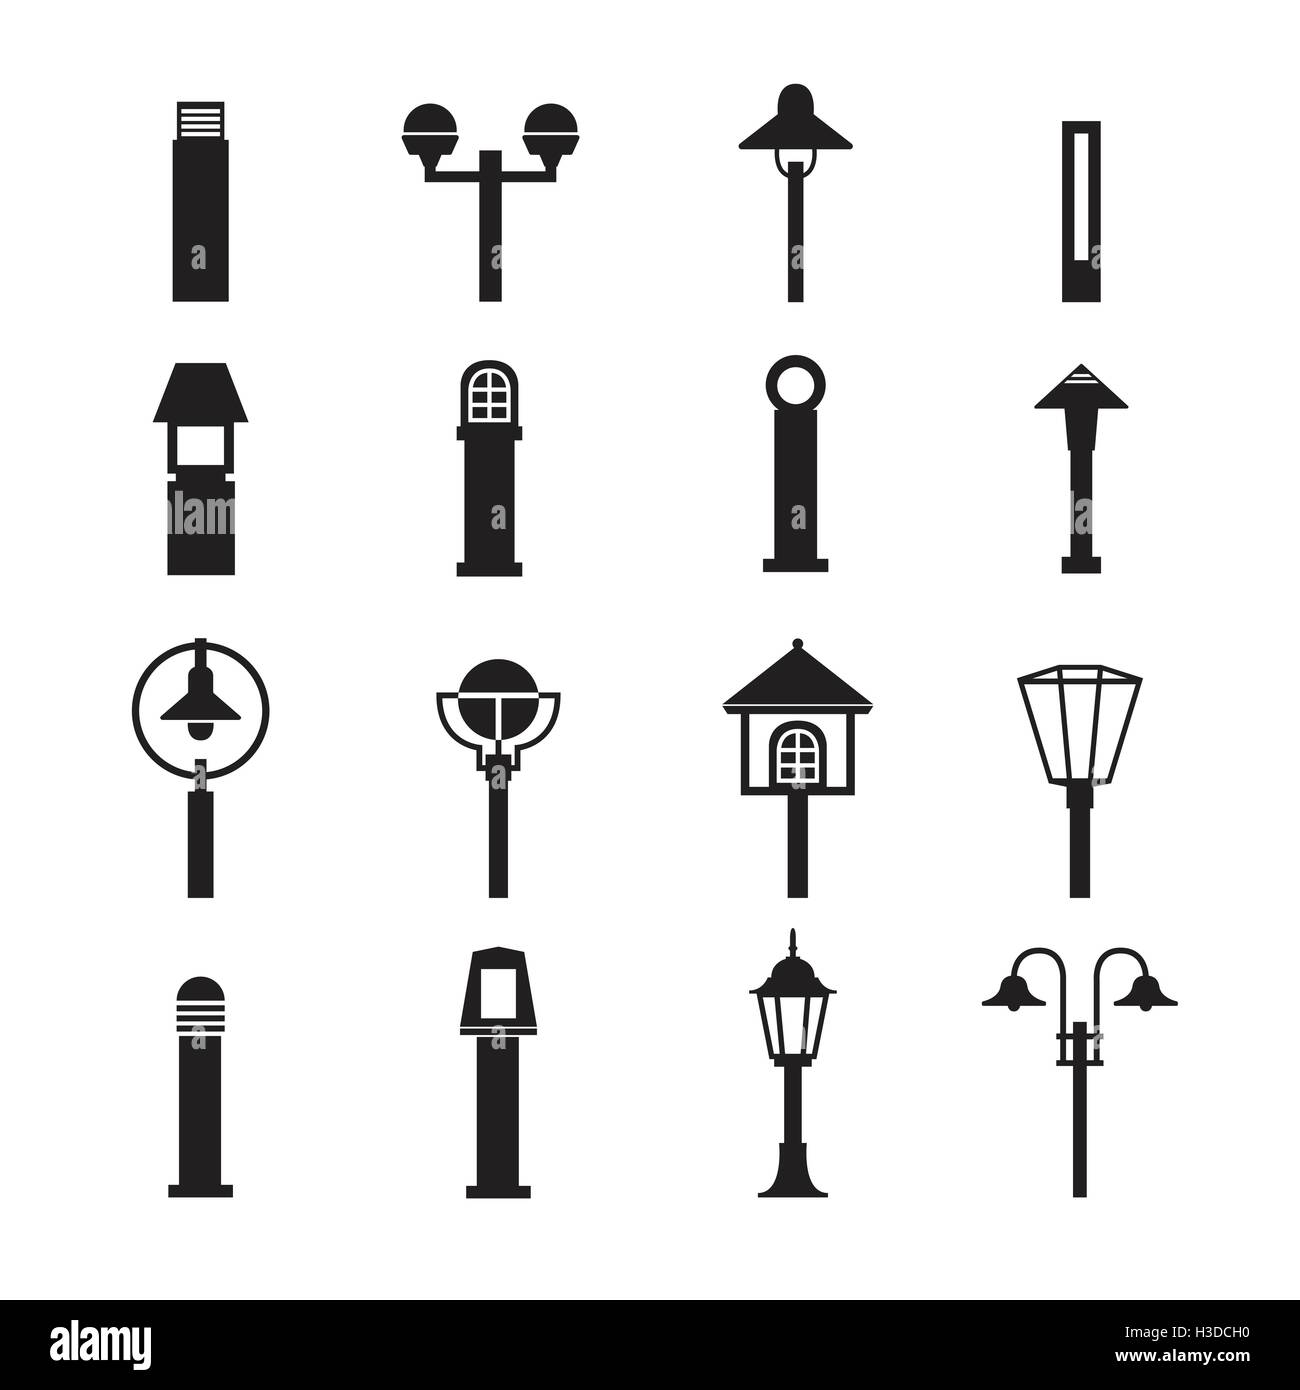 Landscape Lighting Icon: Street Lights And Outdoor Lamps Icon Set Stock Vector Art